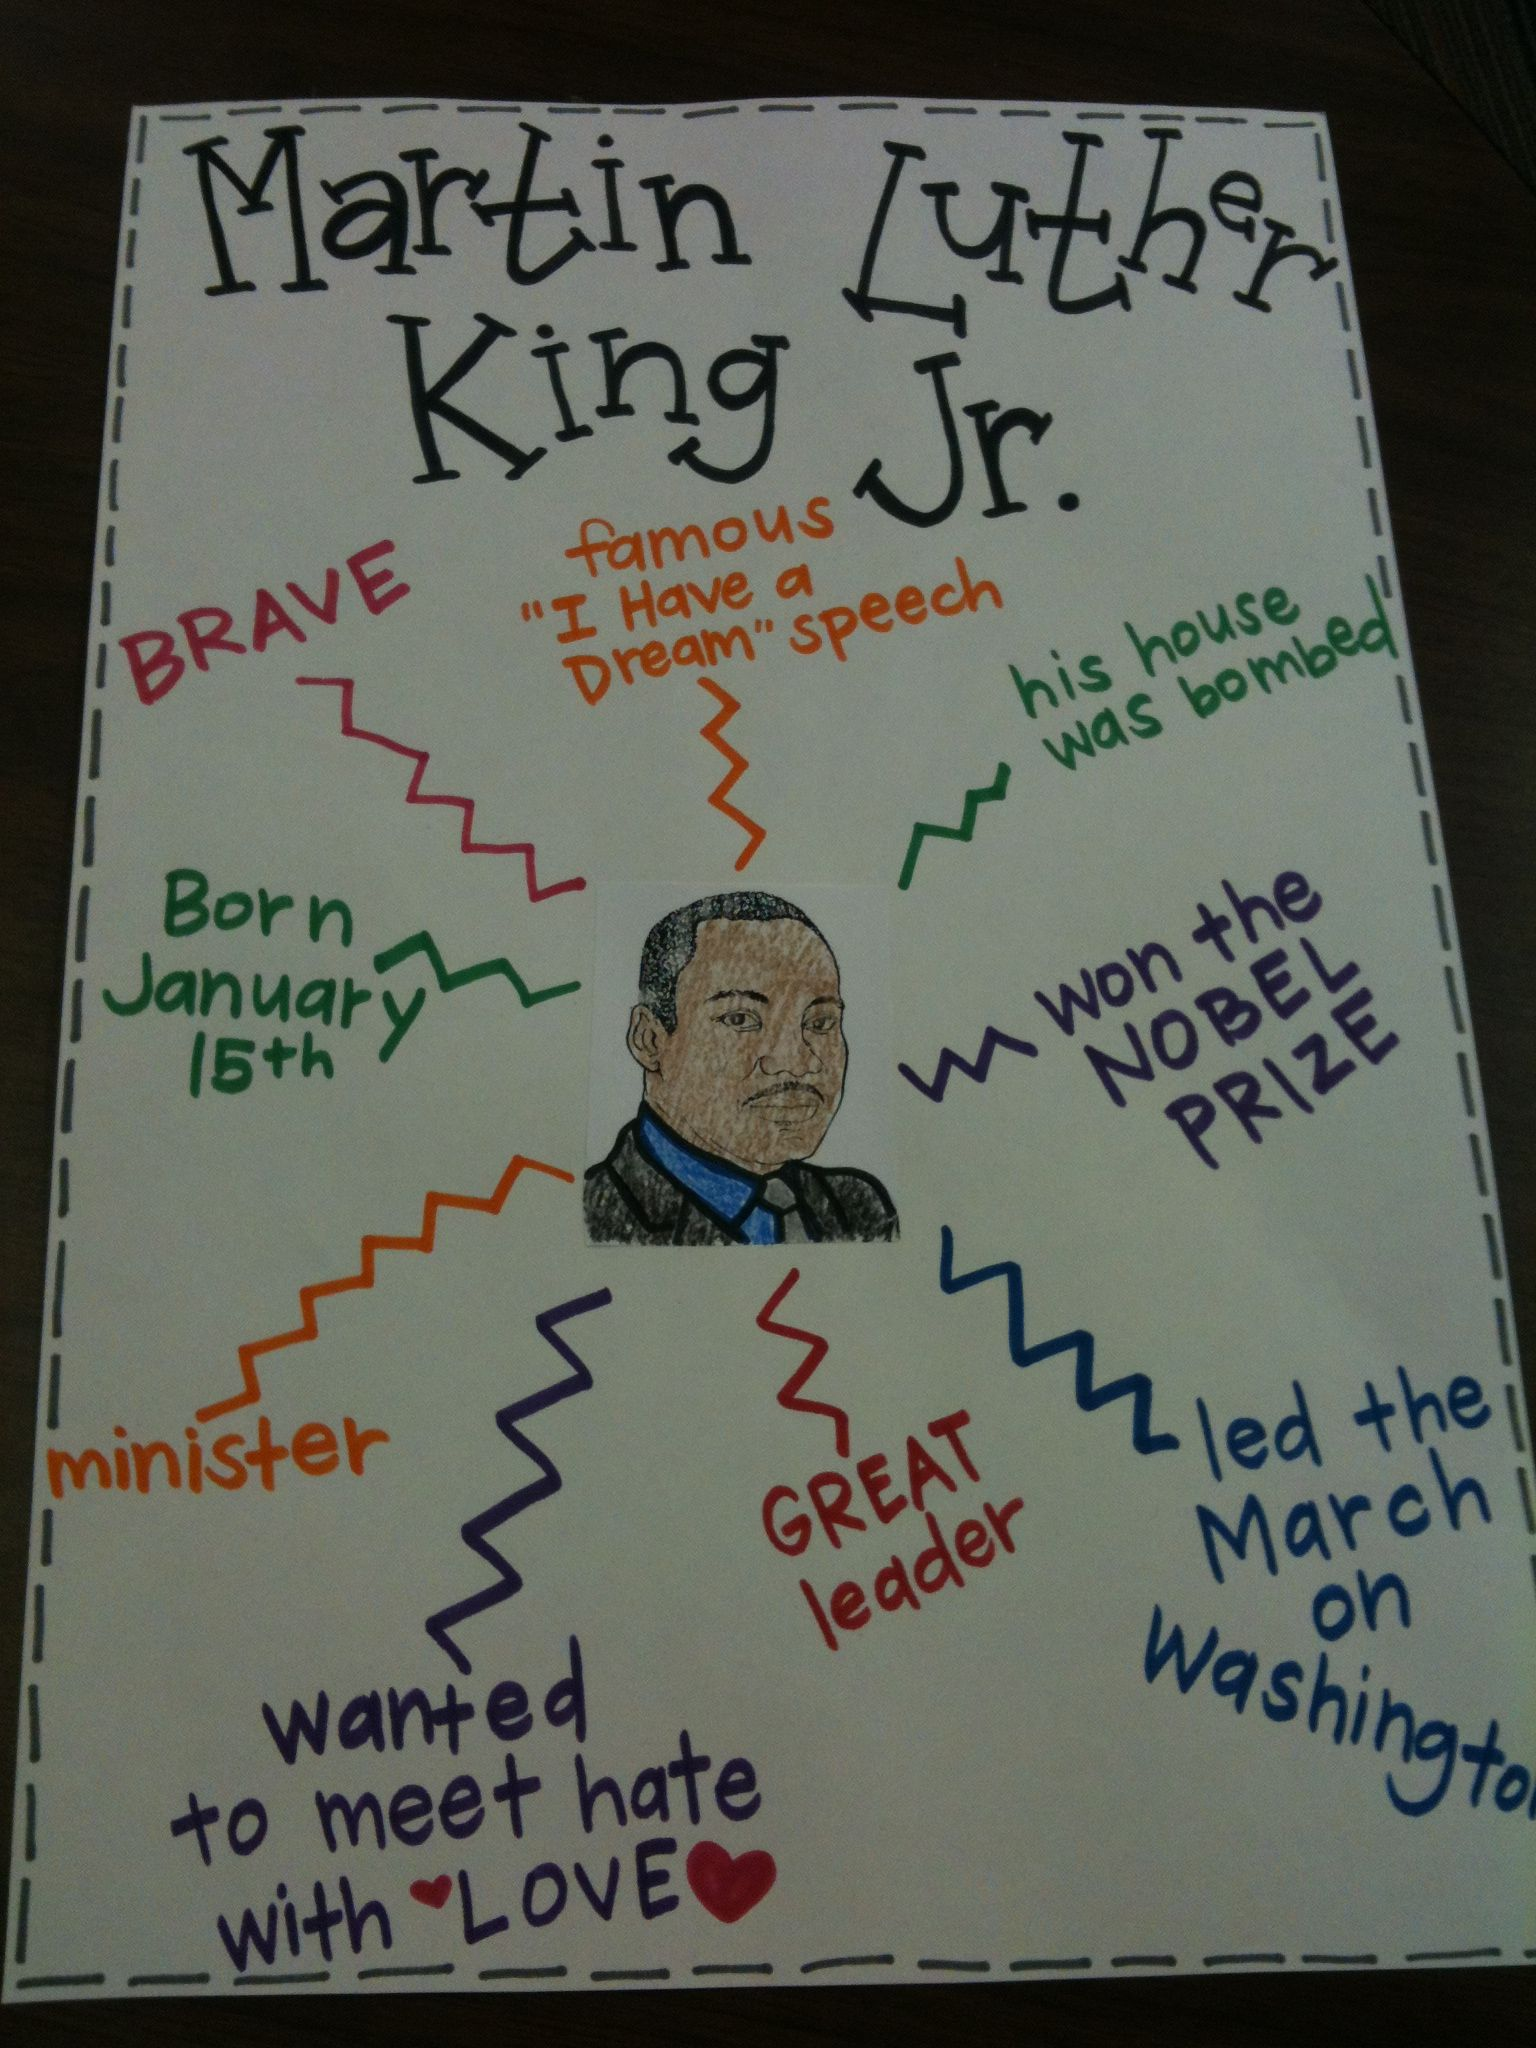 Mlk biography essay examples